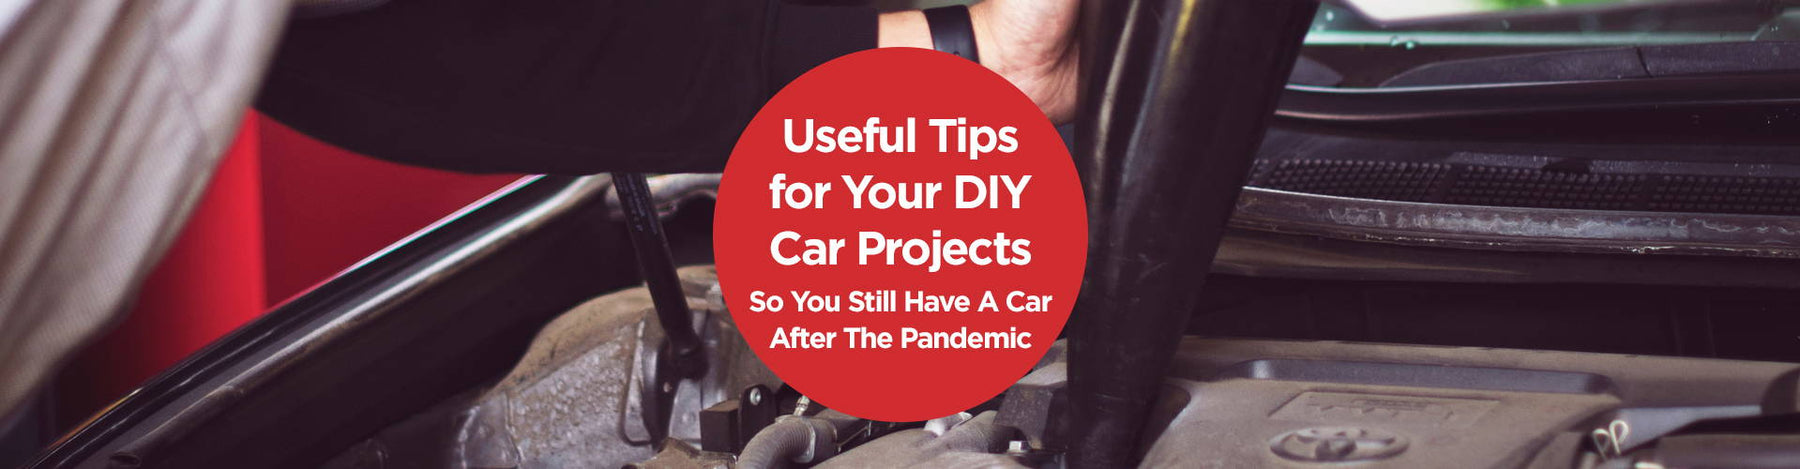 Useful Tips for Your DIY Car Projects So You Still Have A Car After The Pandemic